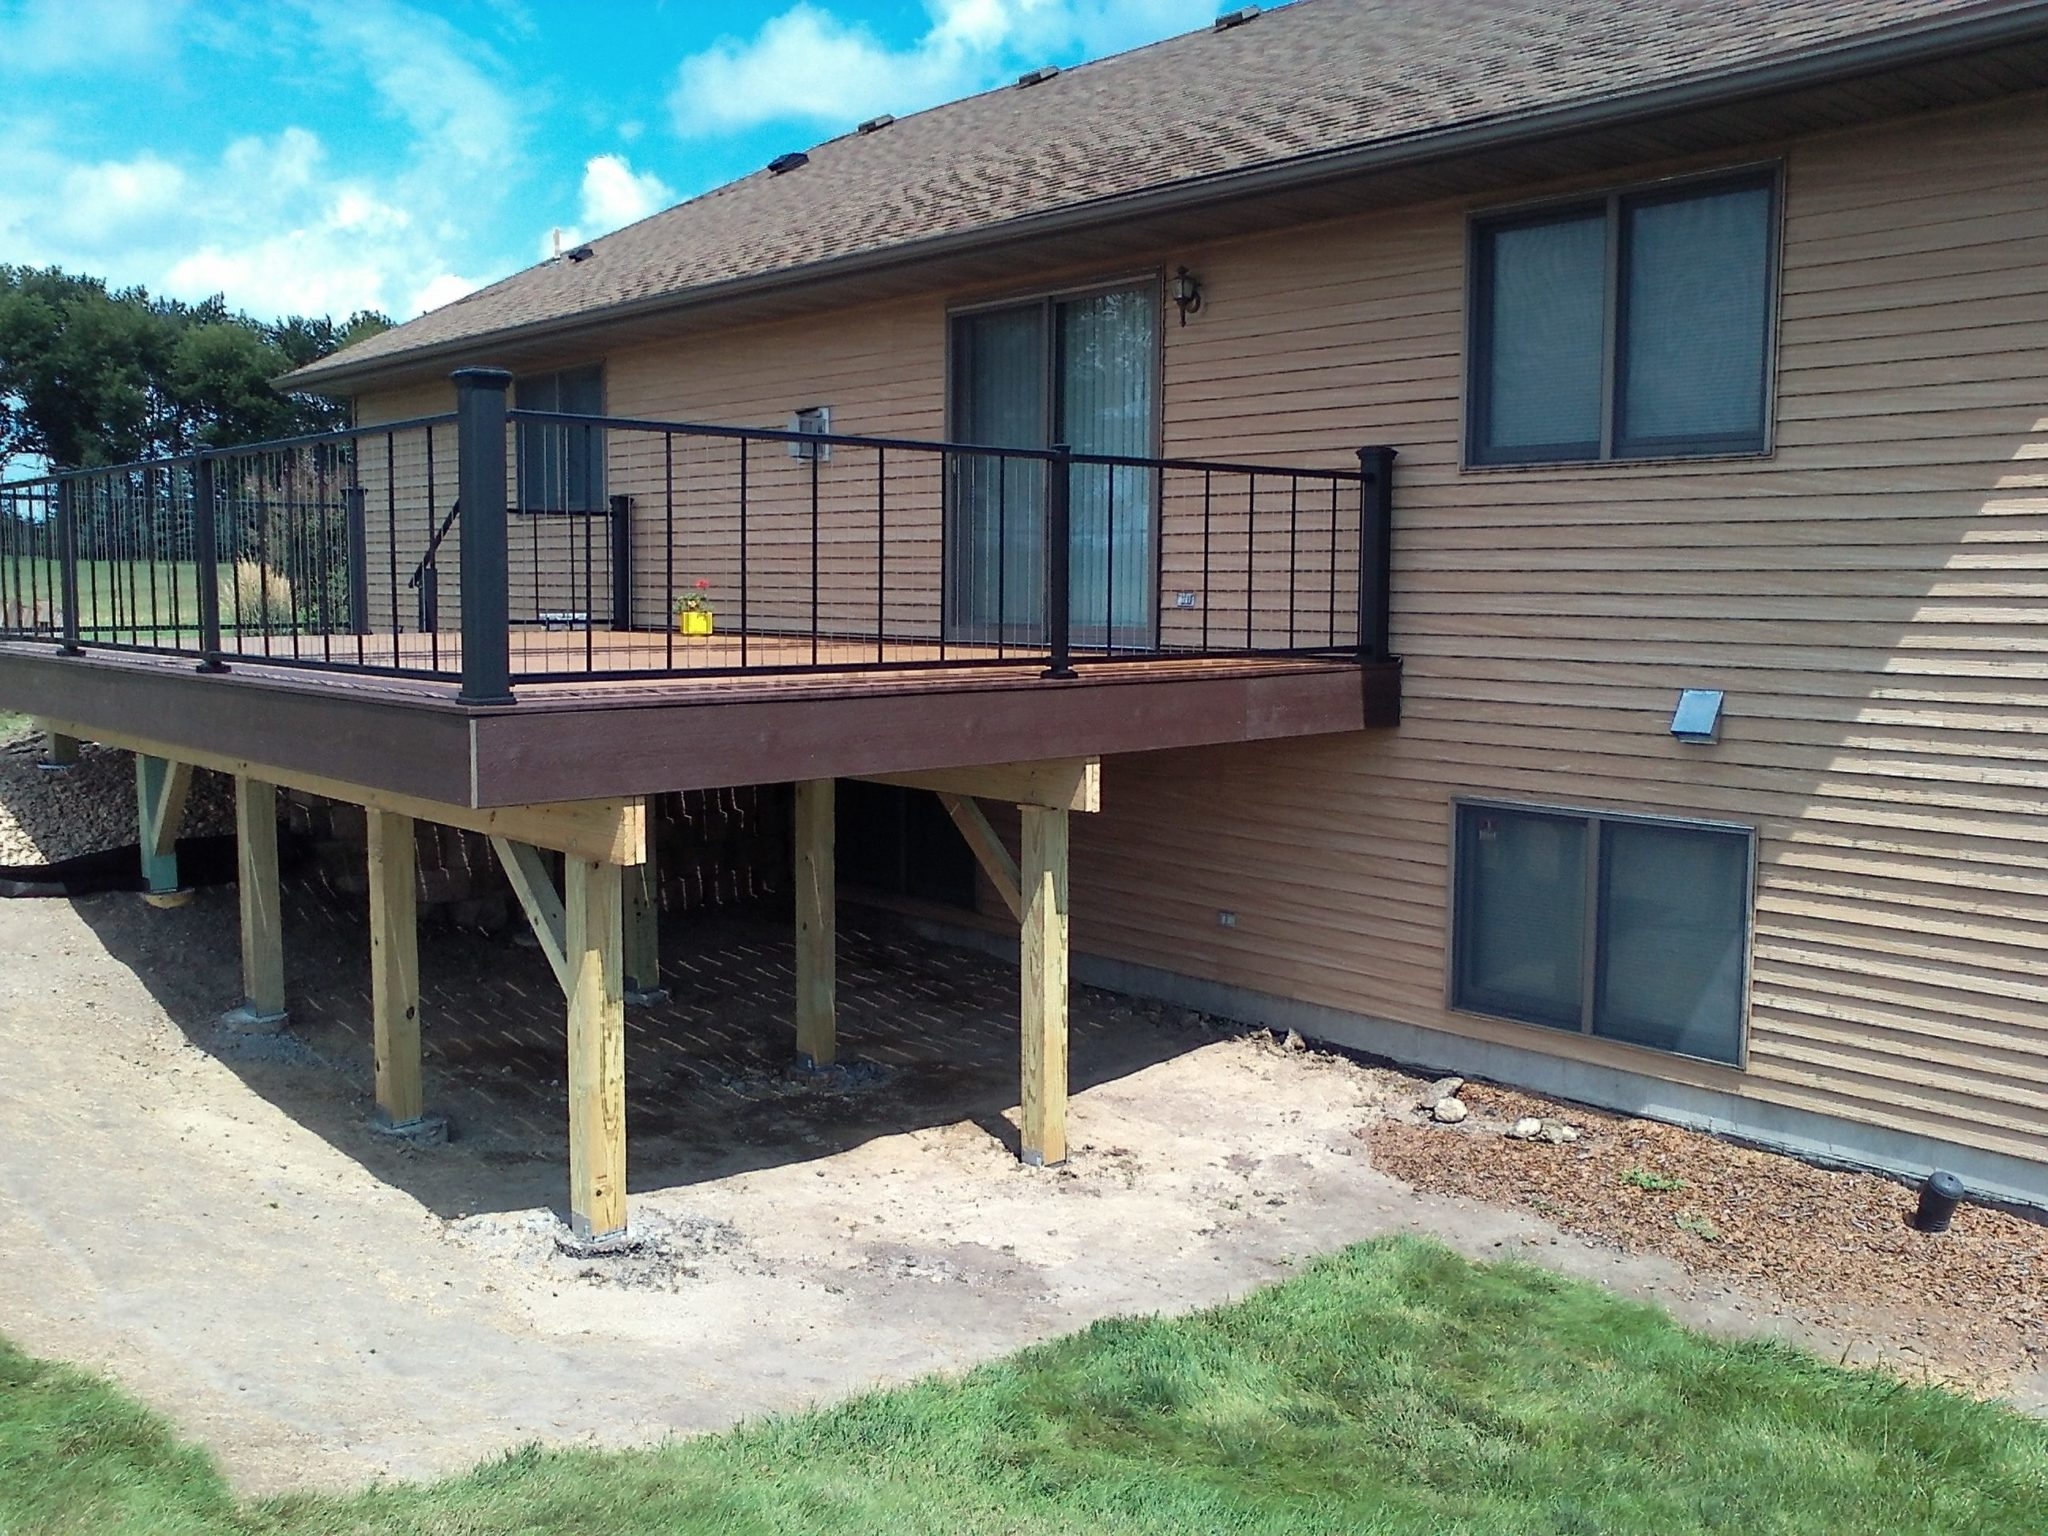 mankato-deck-and-railing-123414